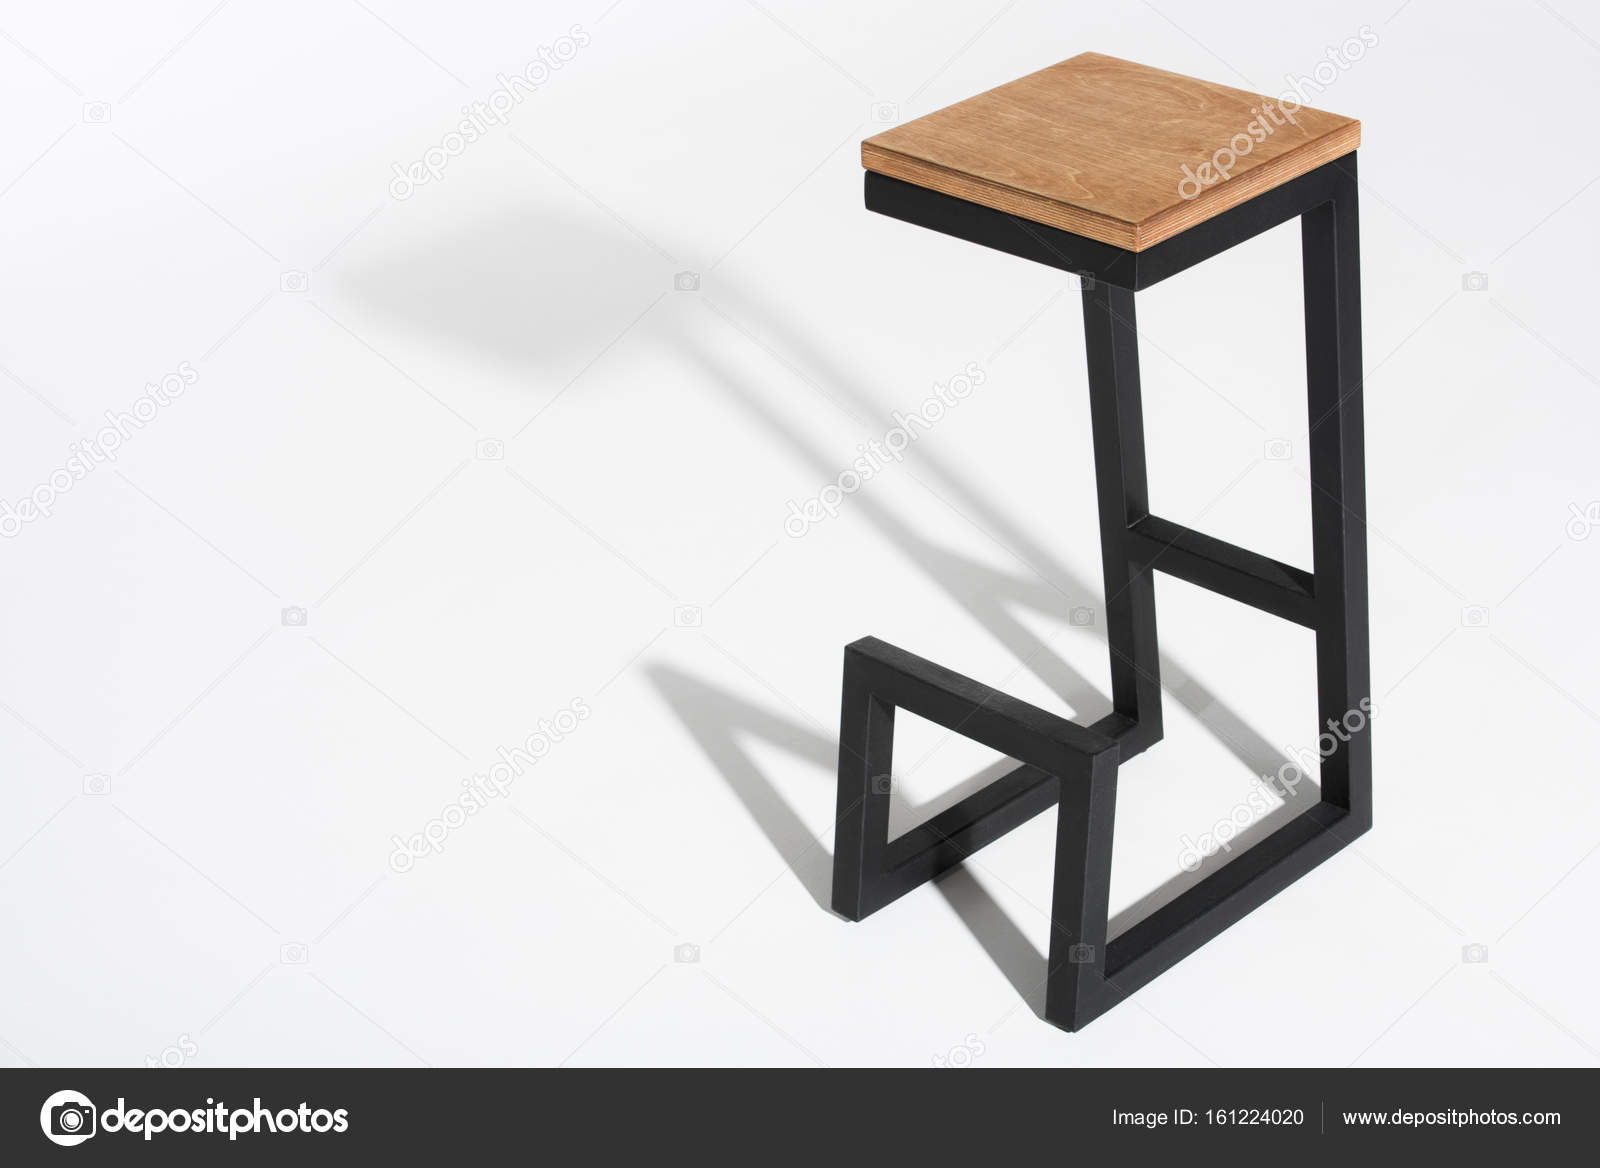 tabouret de bar l gant avec dessus en bois photographie vitalikradko 161224020. Black Bedroom Furniture Sets. Home Design Ideas